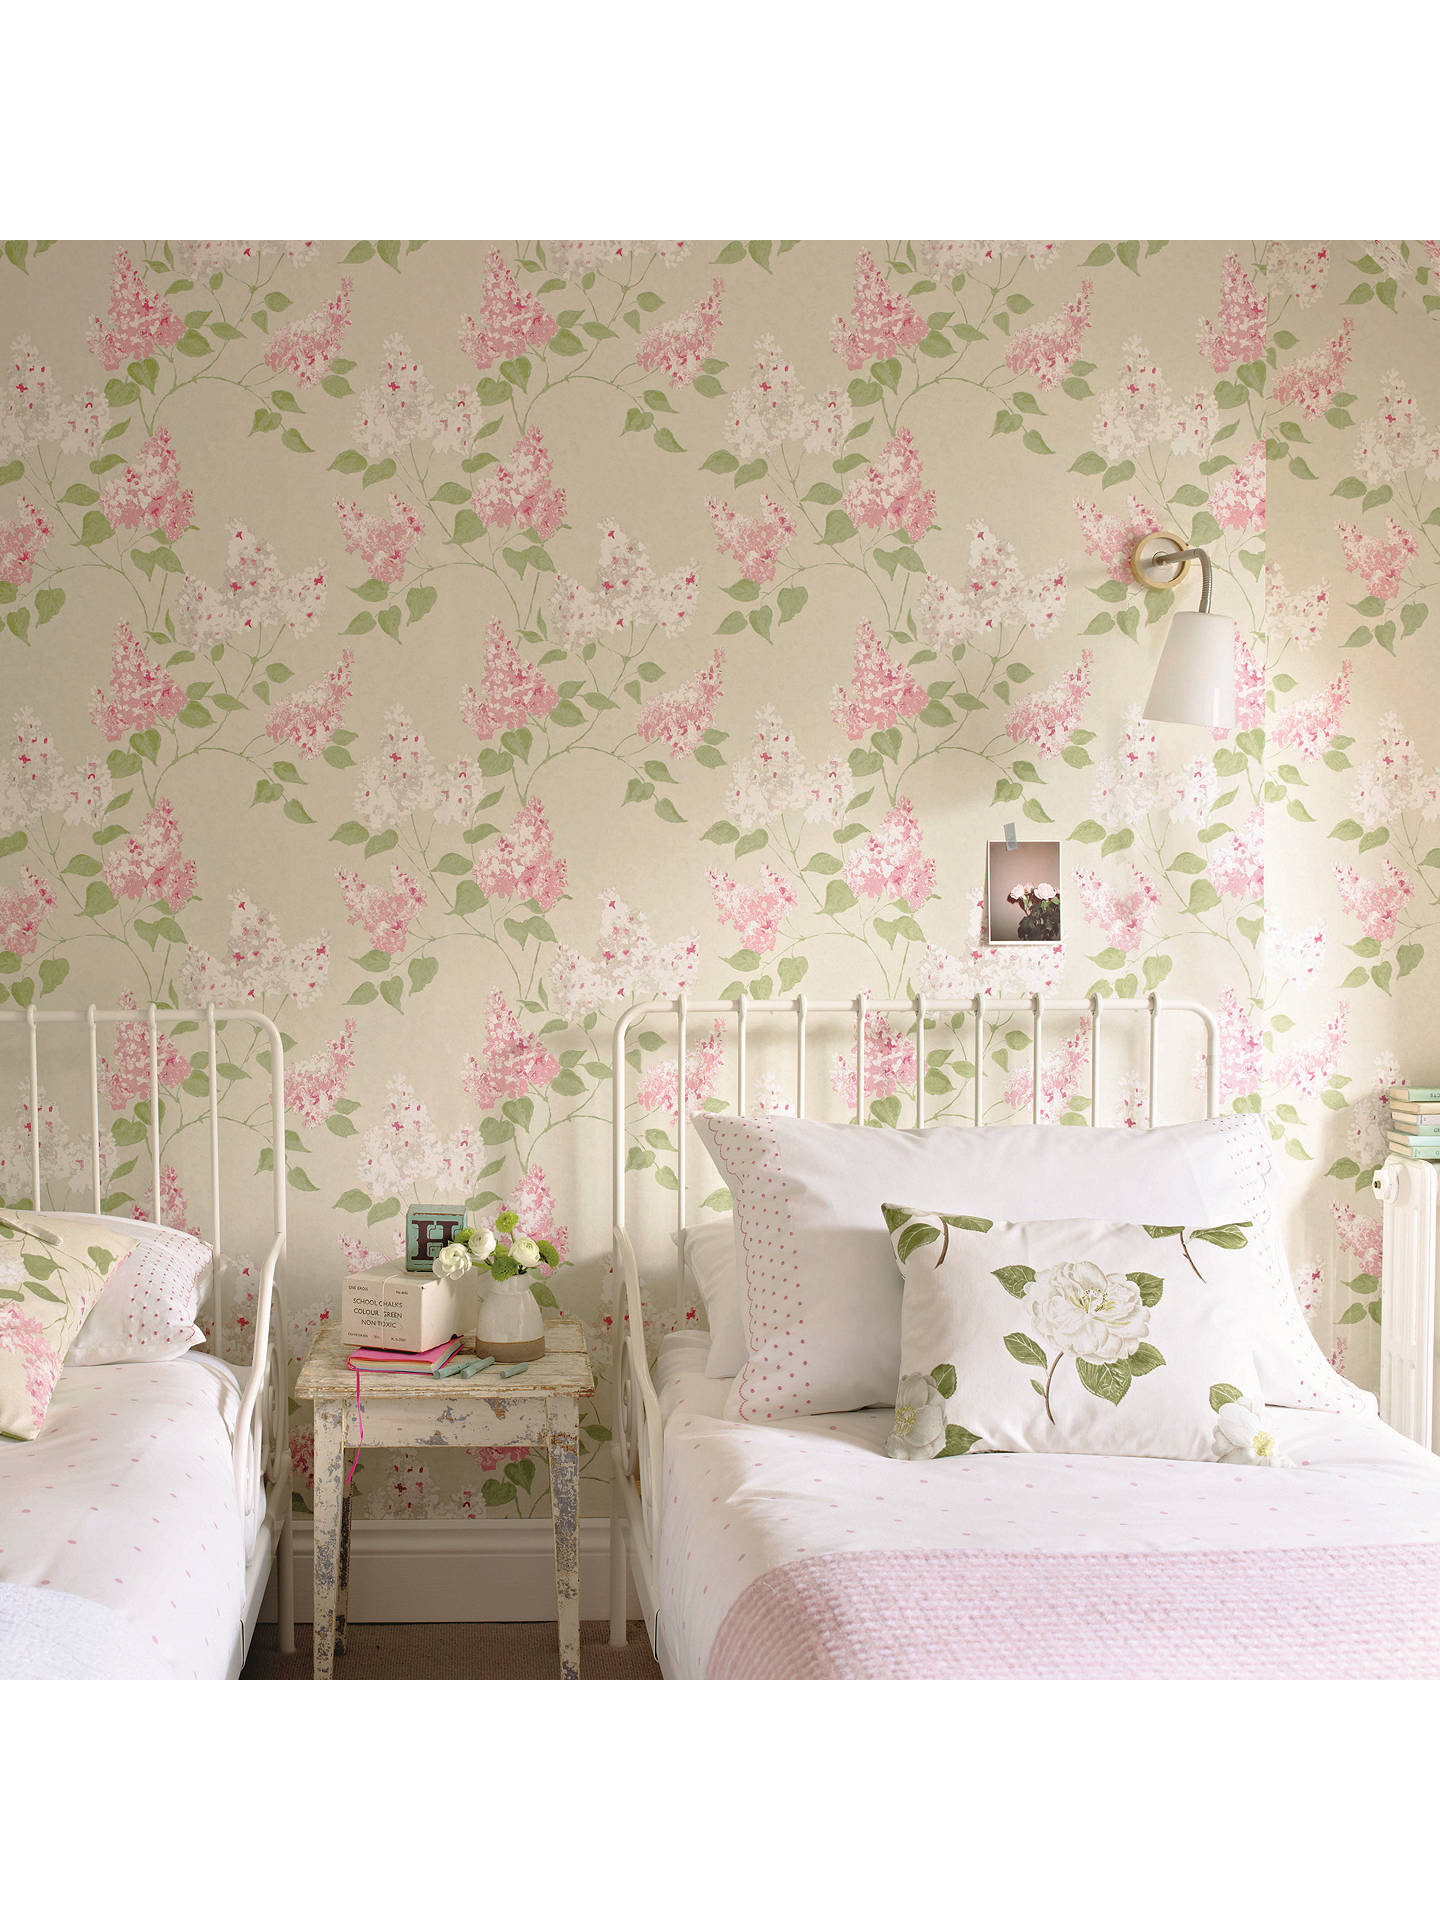 BuySanderson Lilacs Wallpaper, Pink/Stone, 211985 Online at johnlewis.com